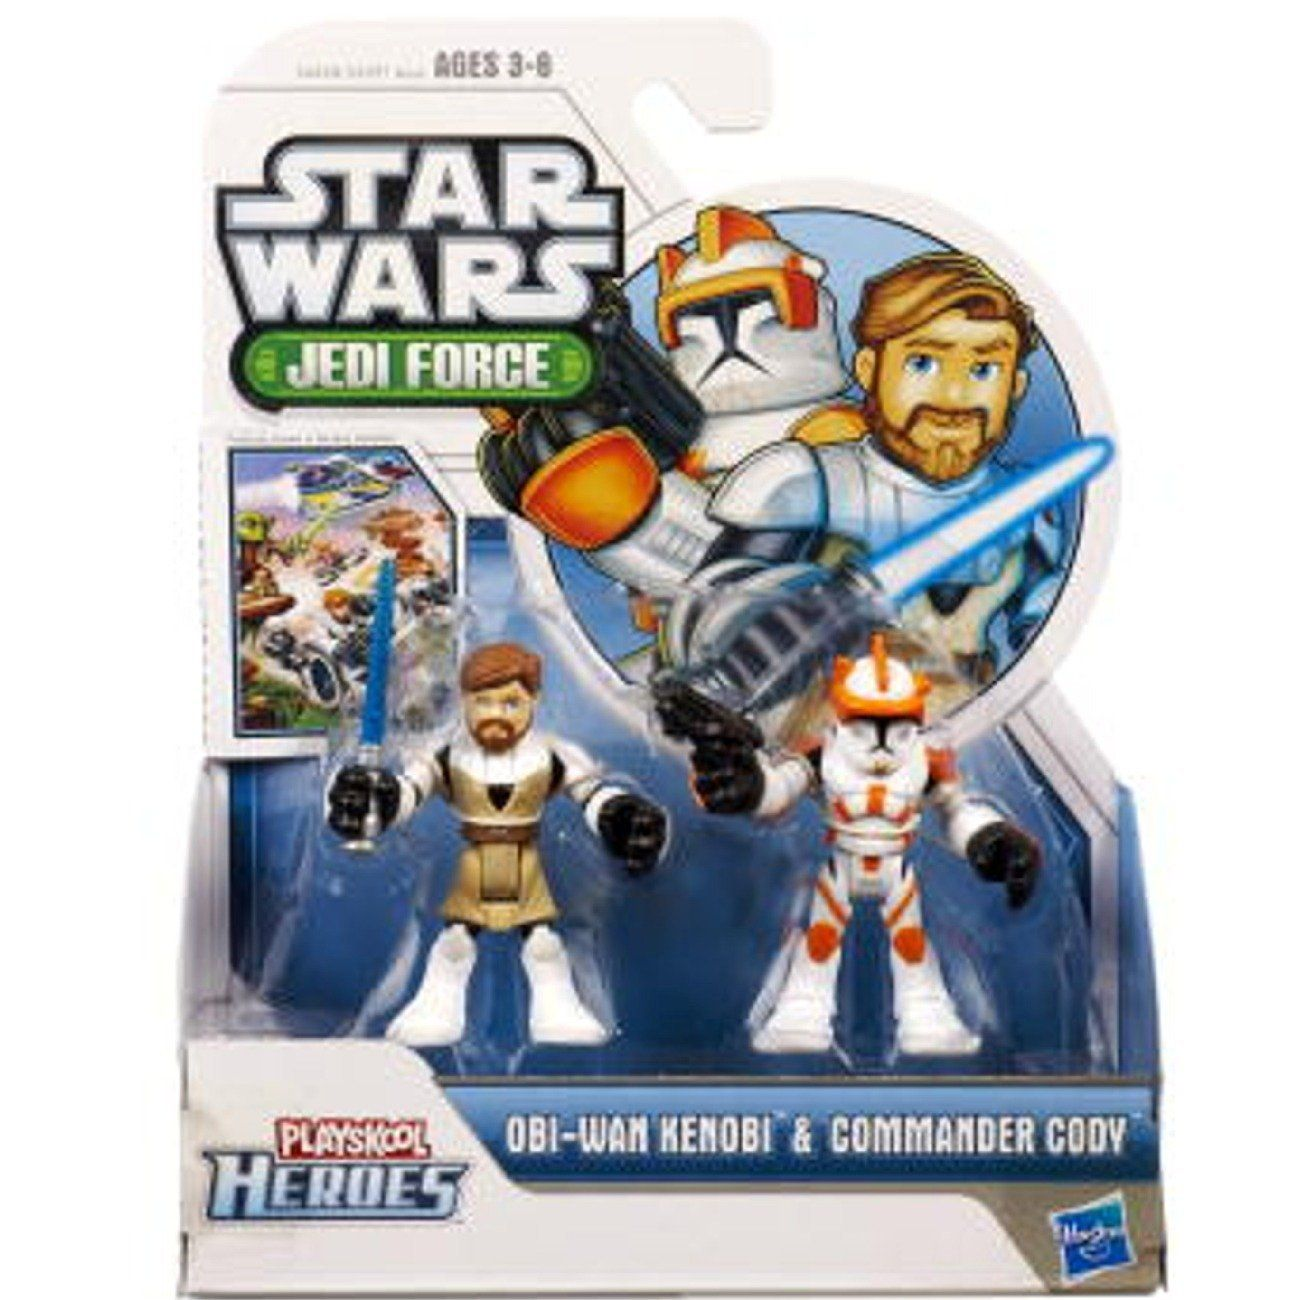 Star Wars Toy Game : Amazon star wars jedi force playskool heroes obi wan